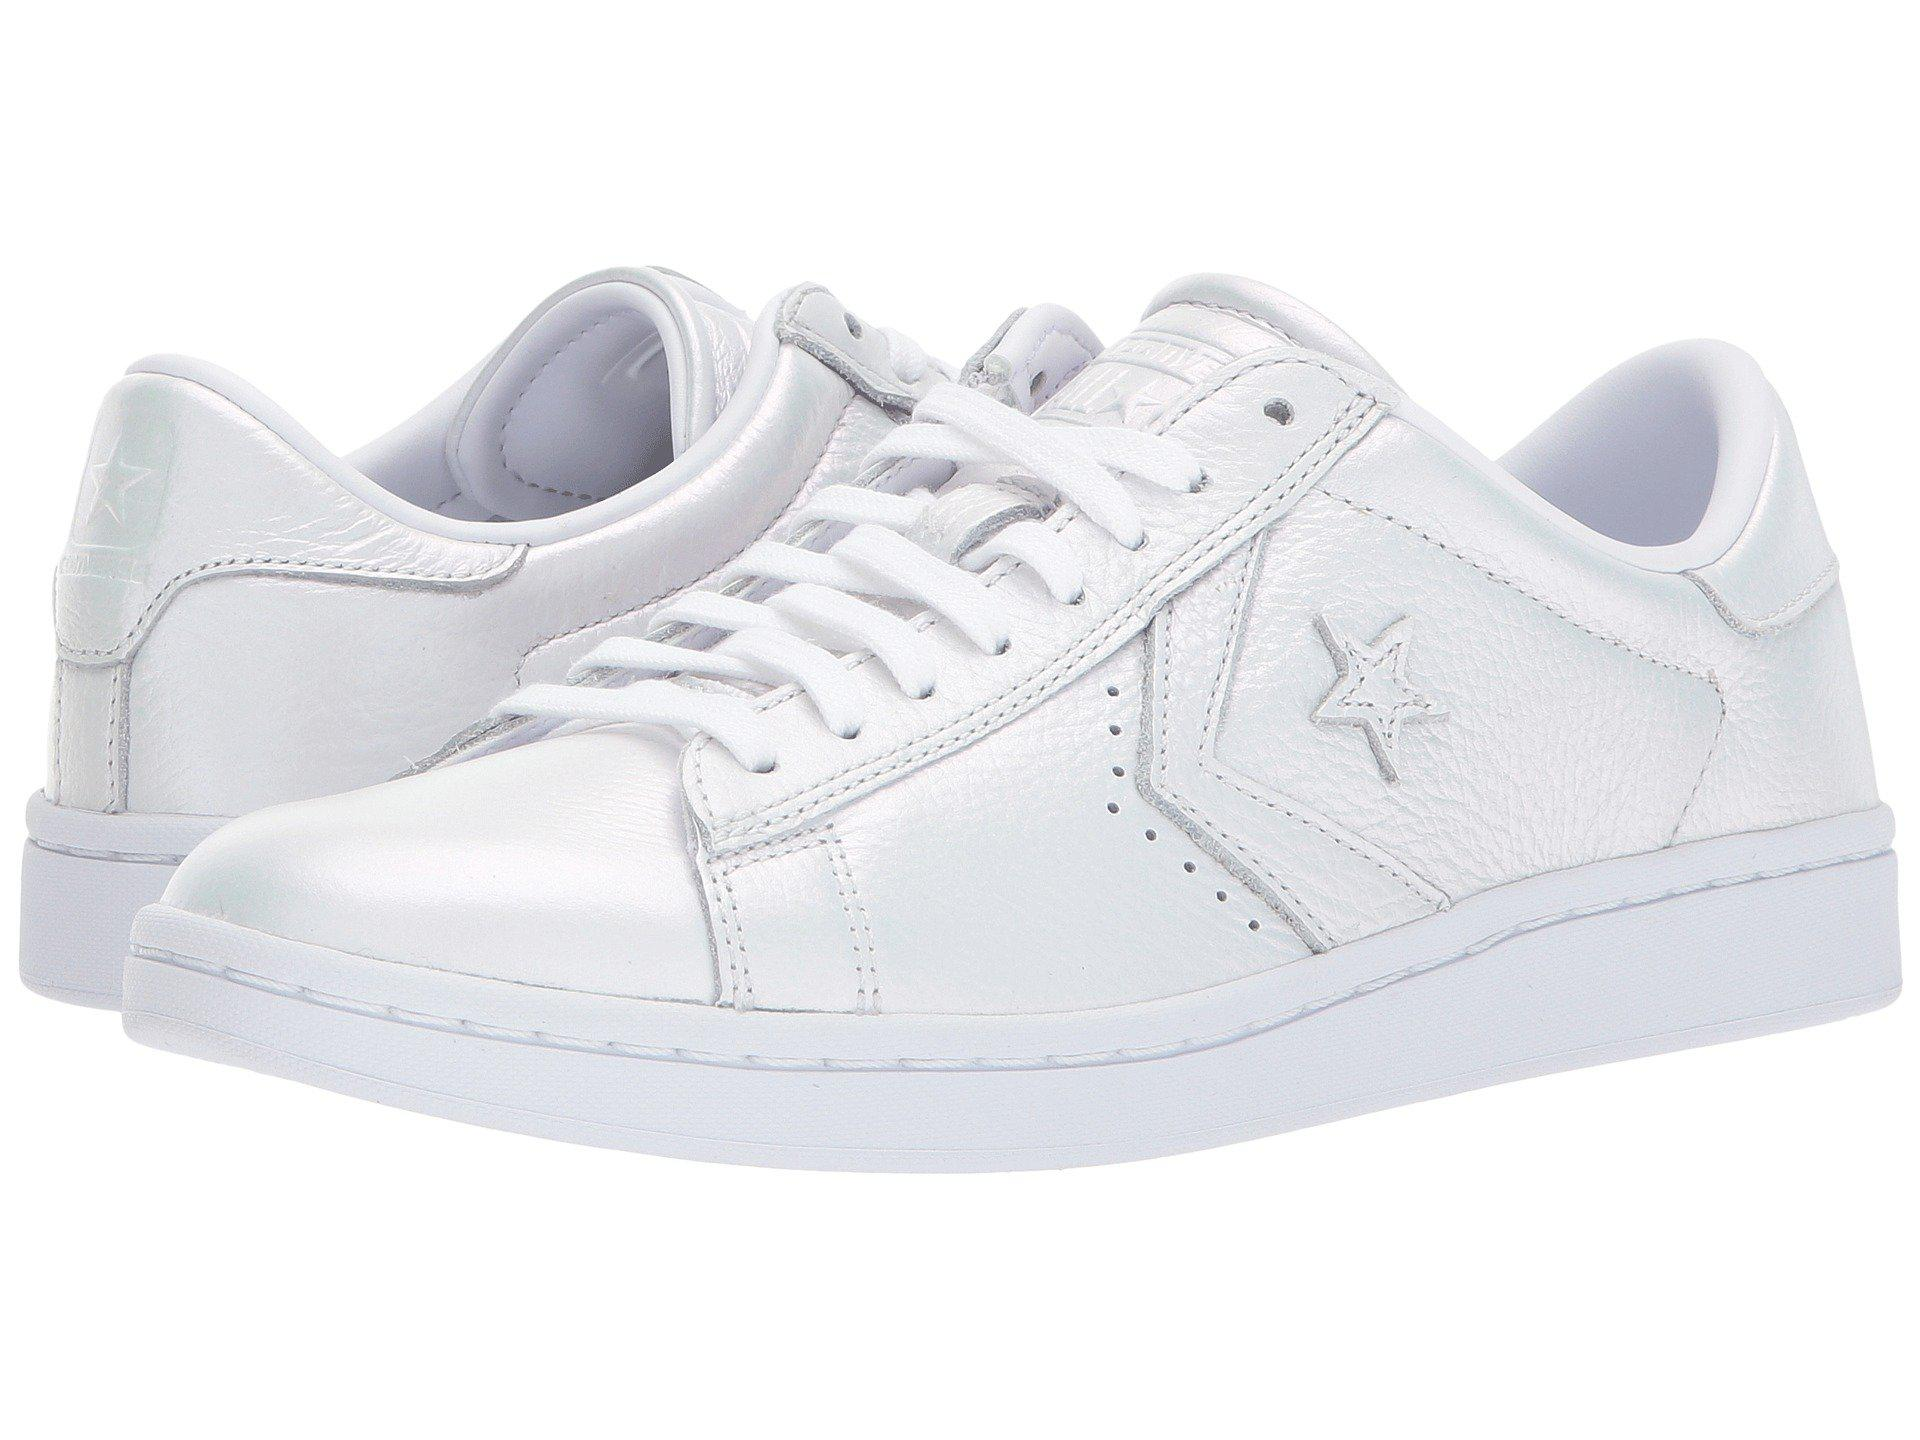 52a836aacce7 Lyst - Converse Pro Leather Lp Iridescent Leather Ox in White